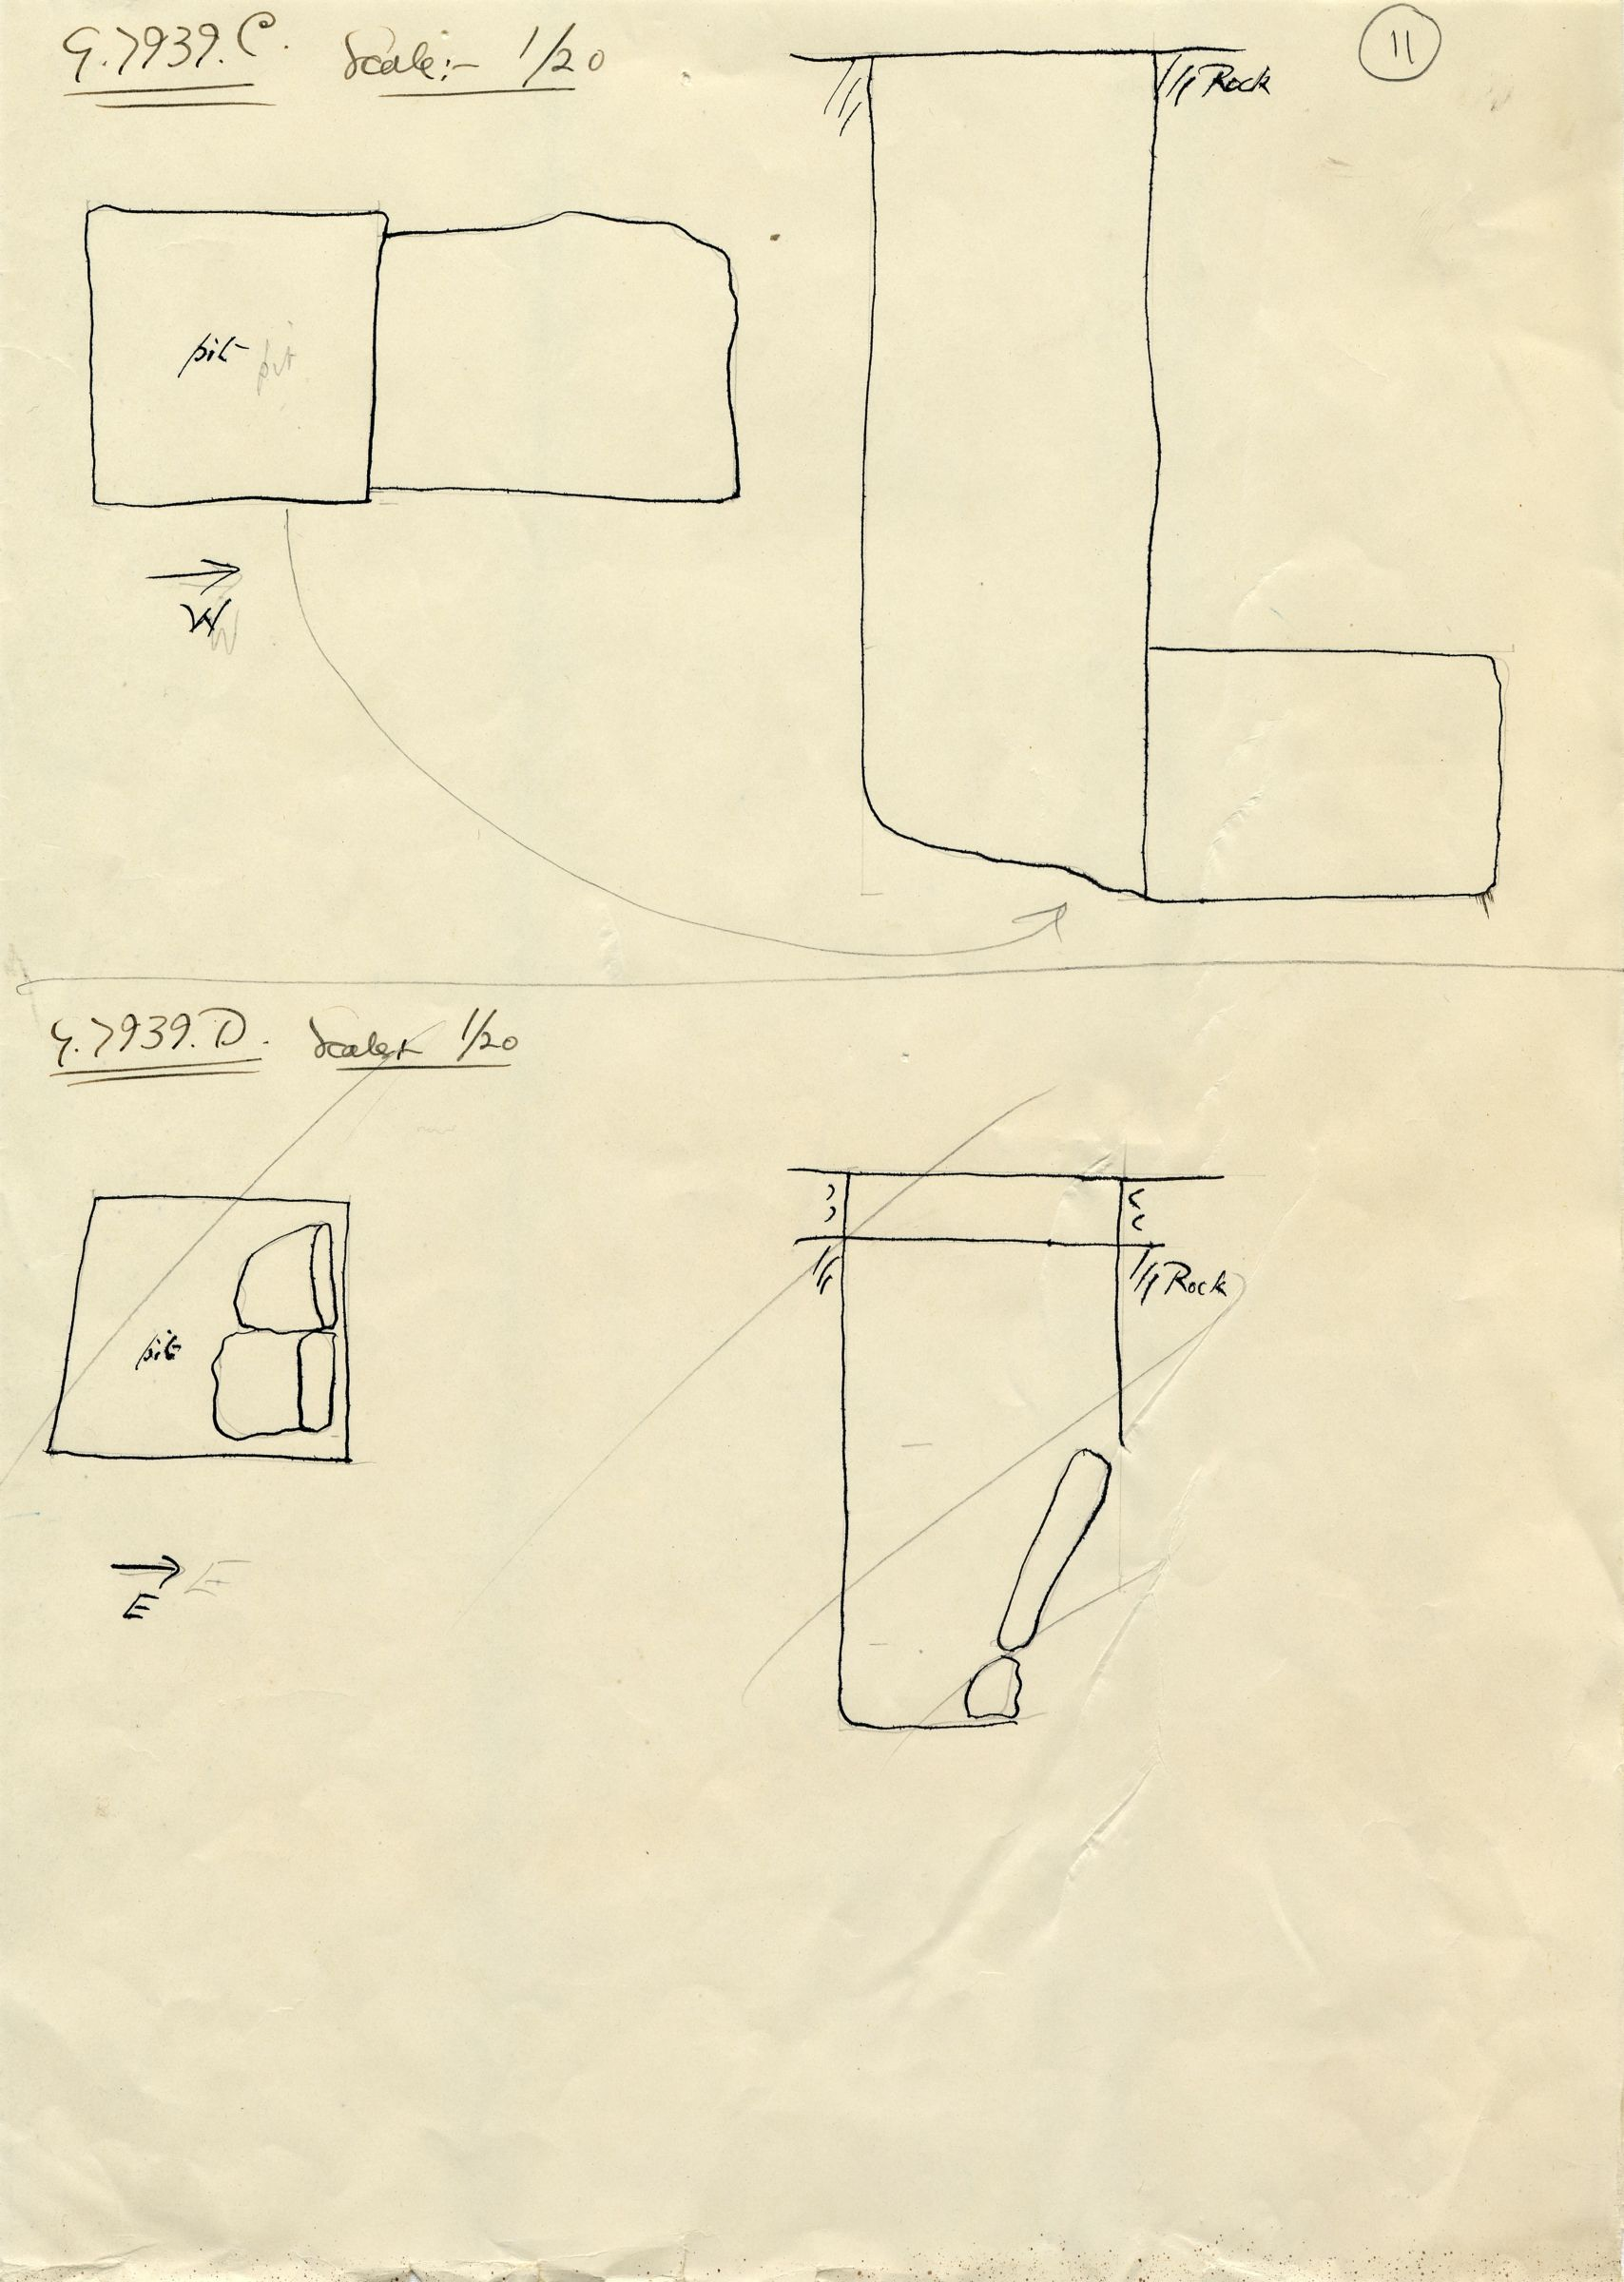 Maps and plans: G 7939, Shaft C and D